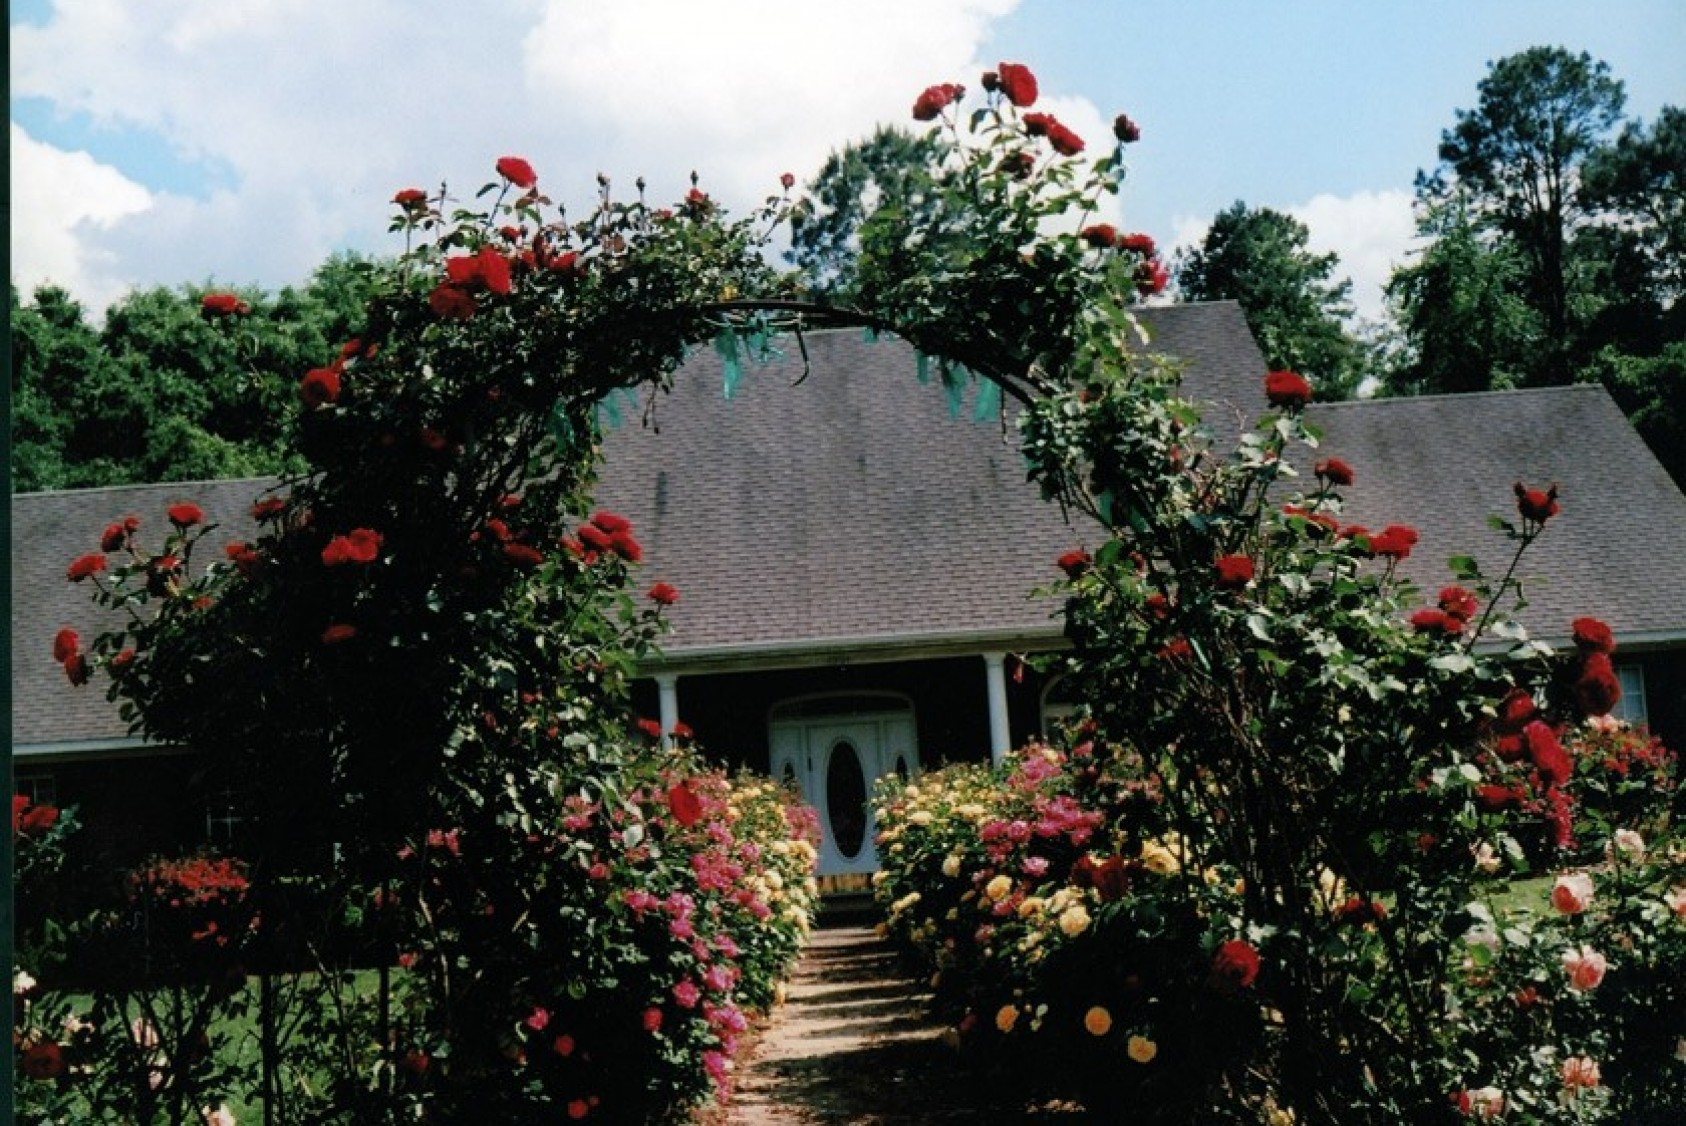 Red climbing Don Juan roses adorn the walkway to Seymour's home.